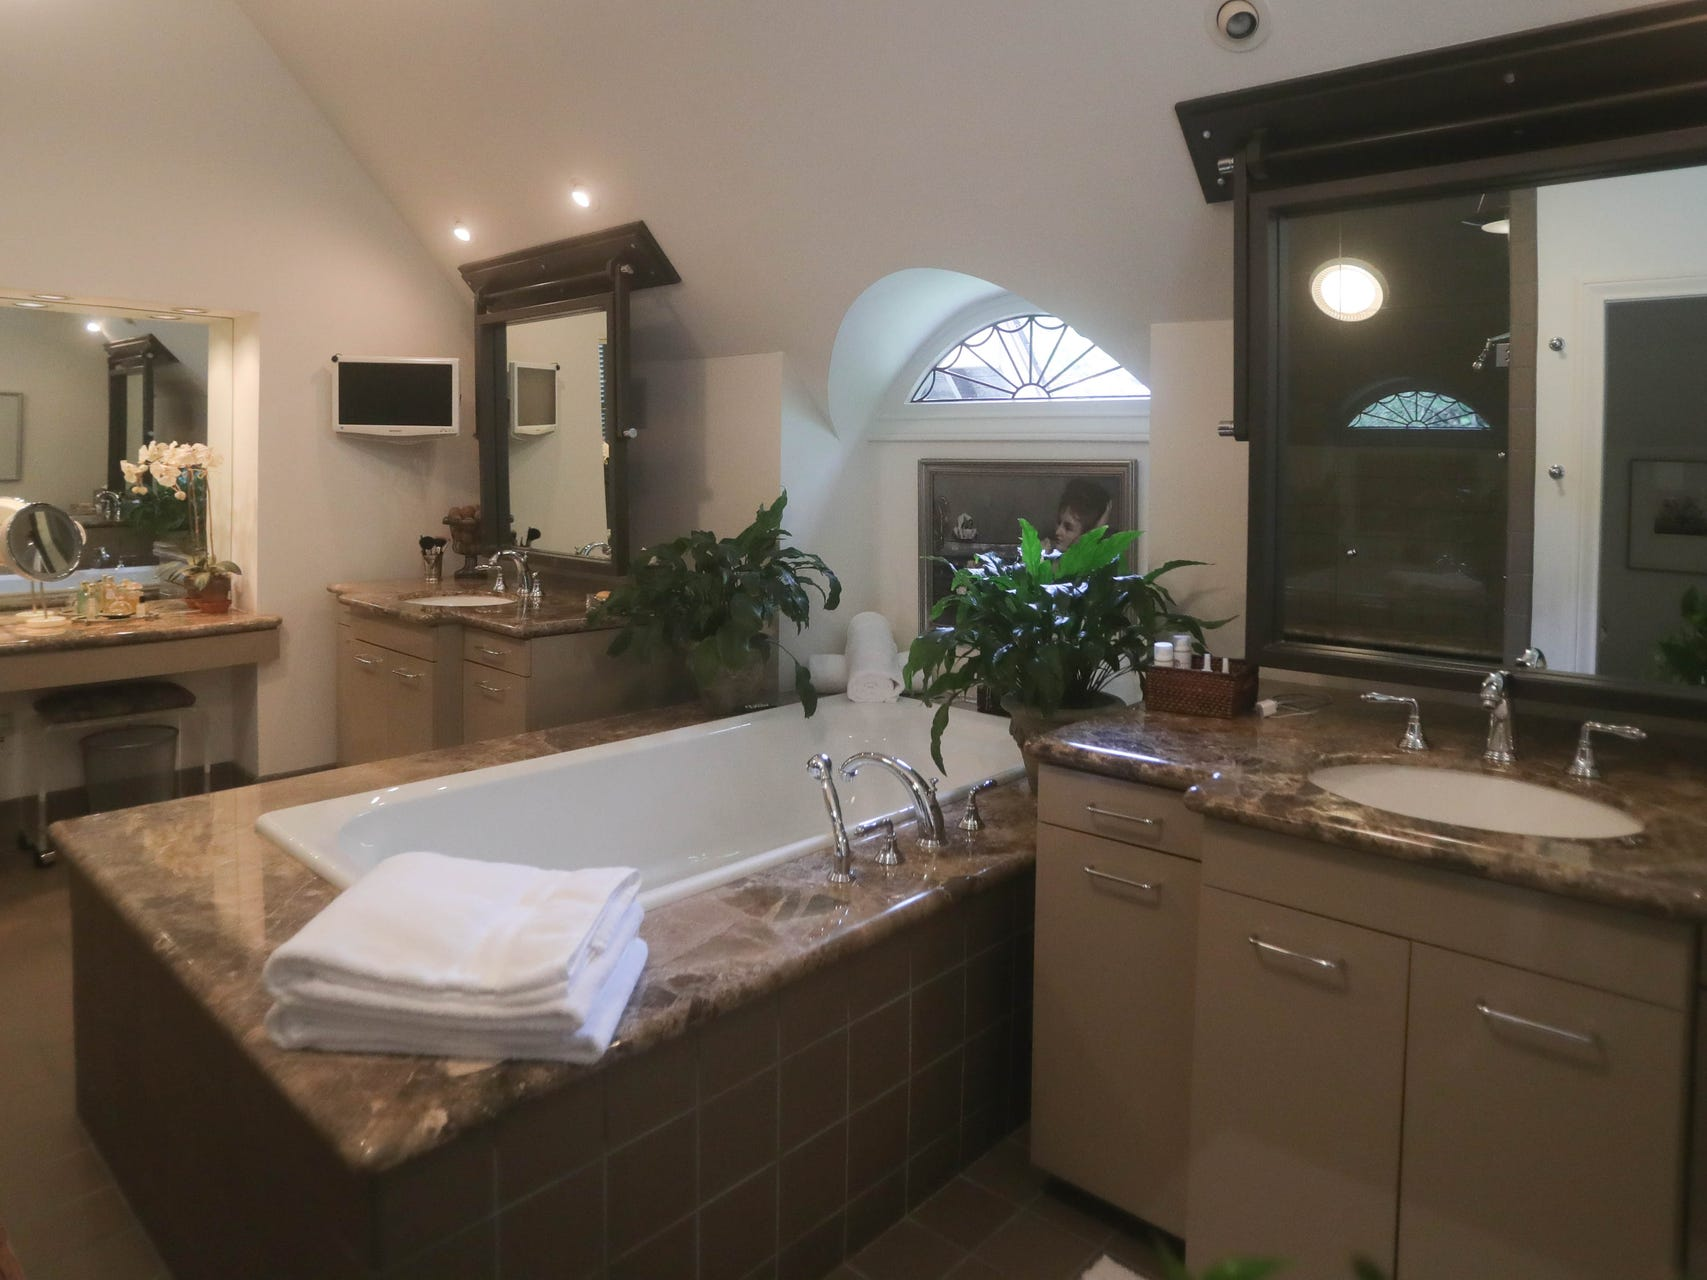 The owners' suite includes a large new walk-in closest and a glamorous bath.